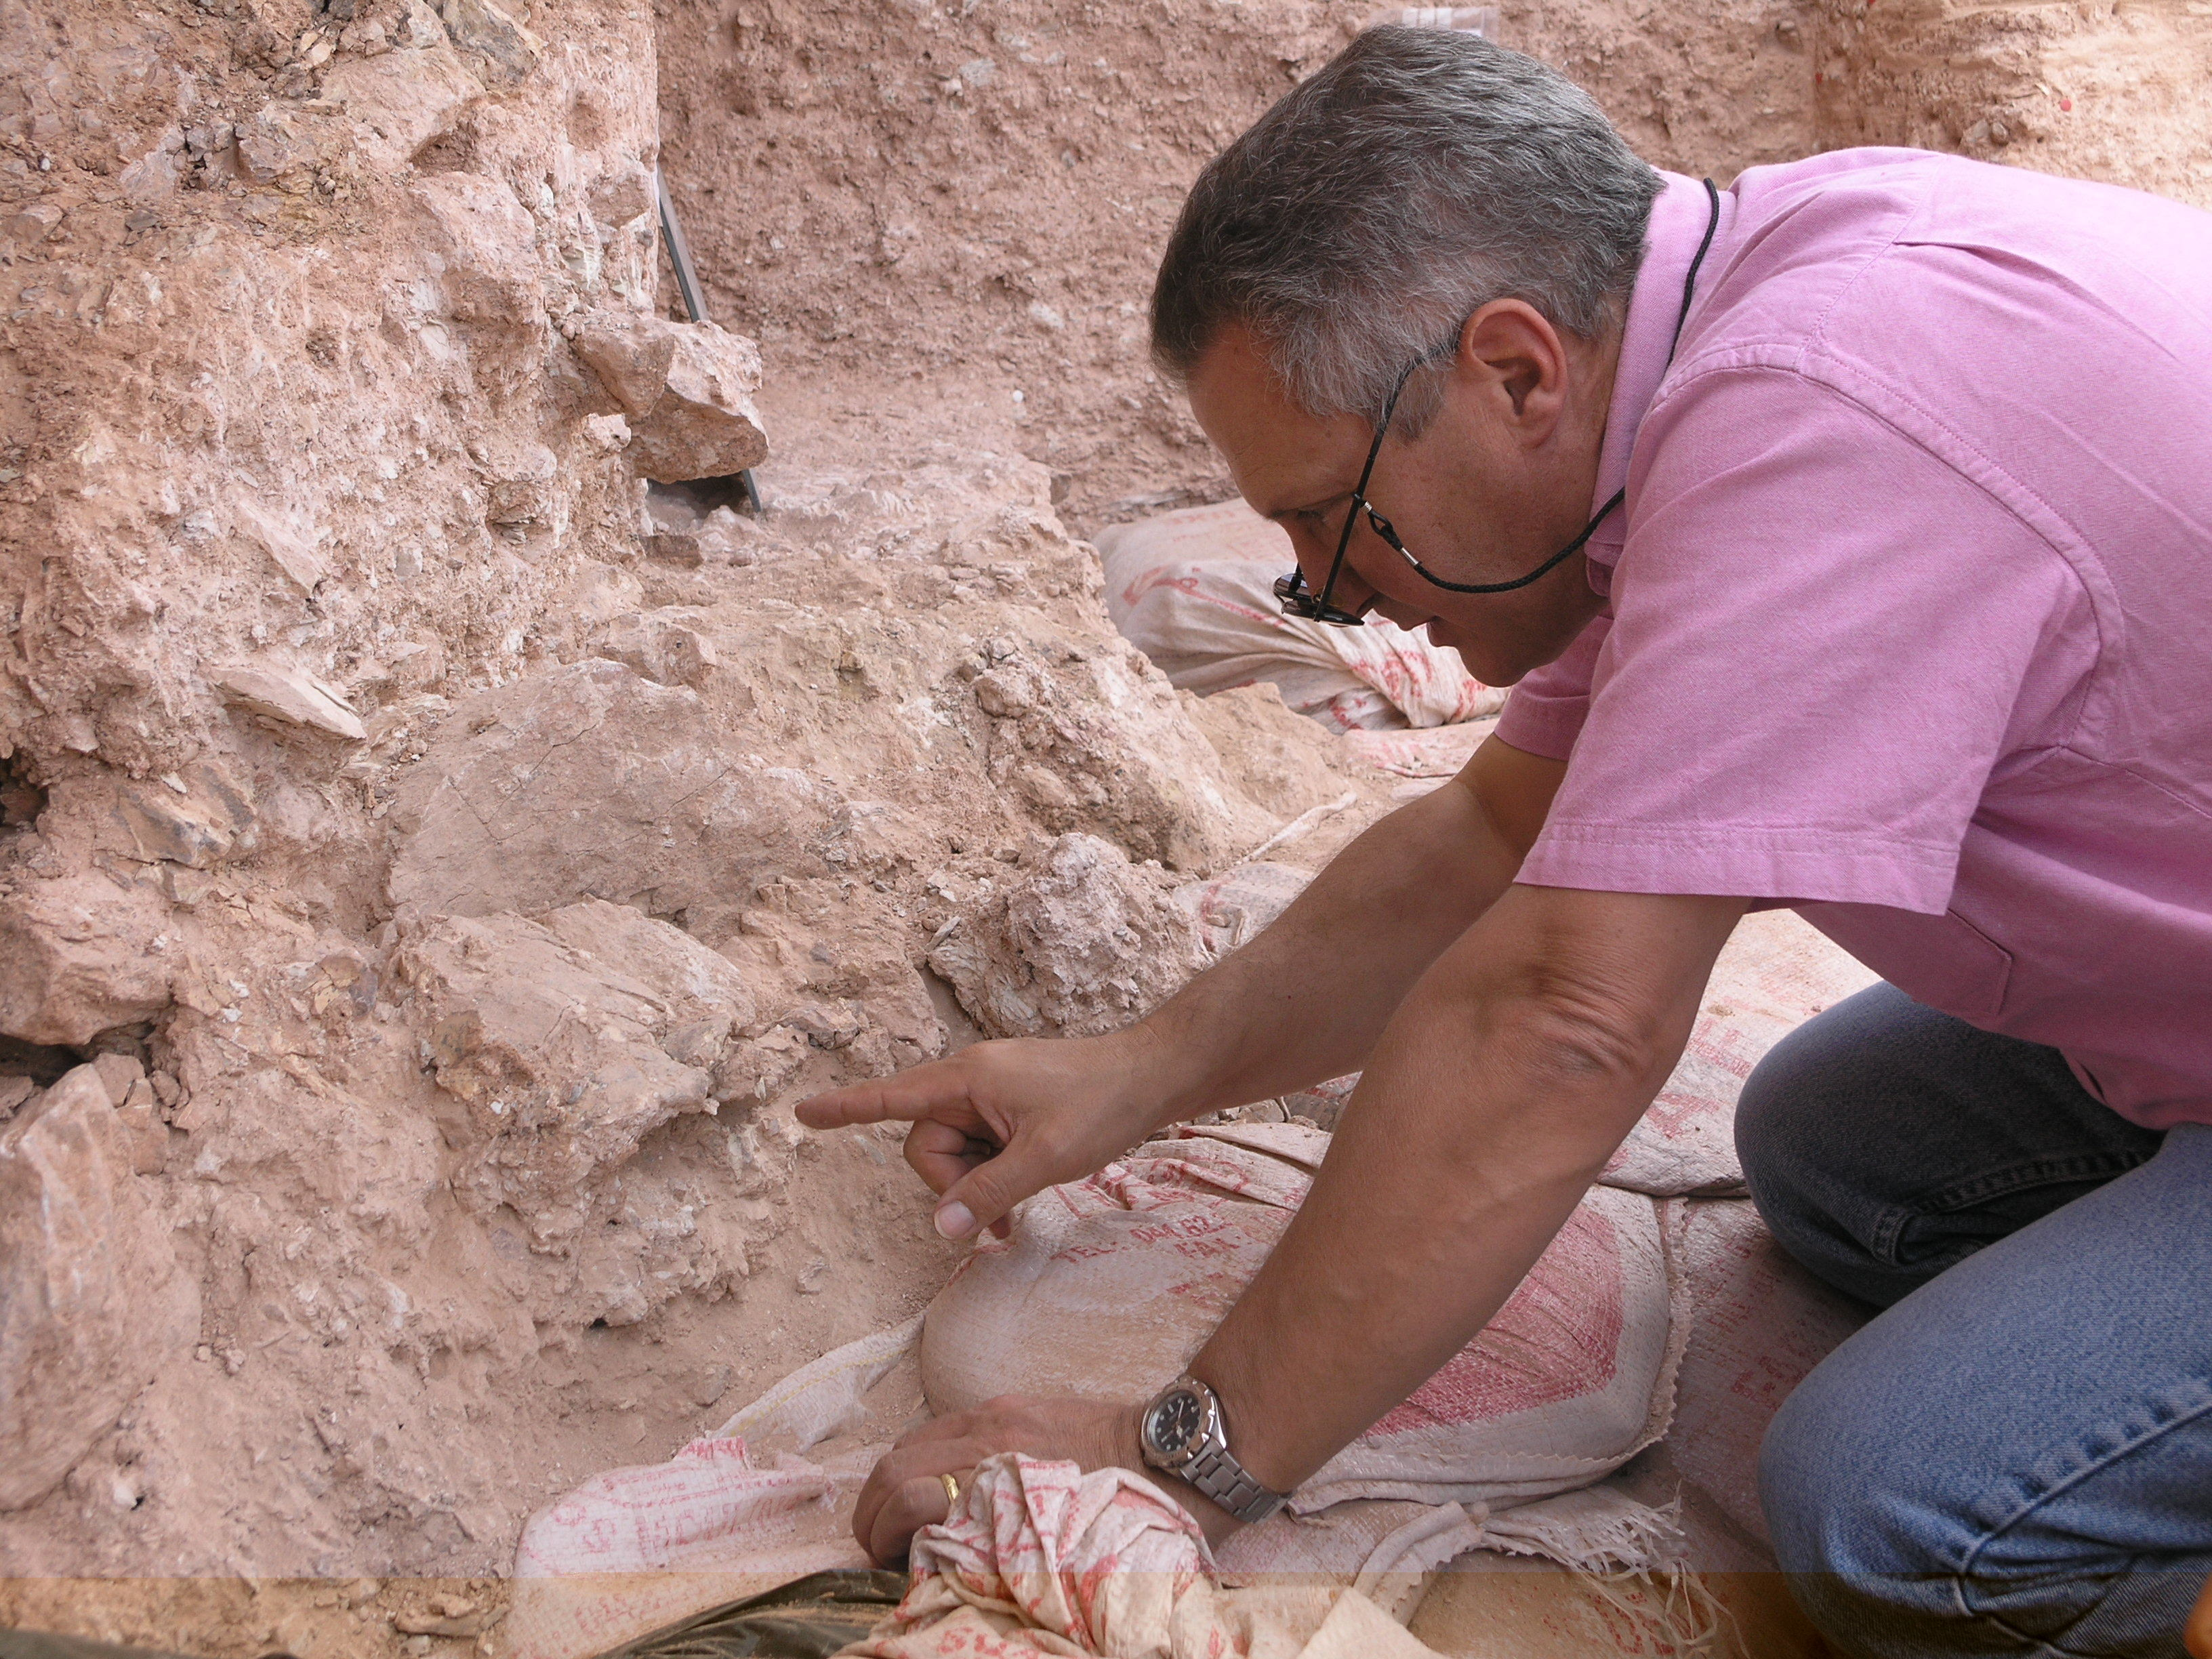 Dr. Jean-Jacques Hublin at Jebel Irhoud